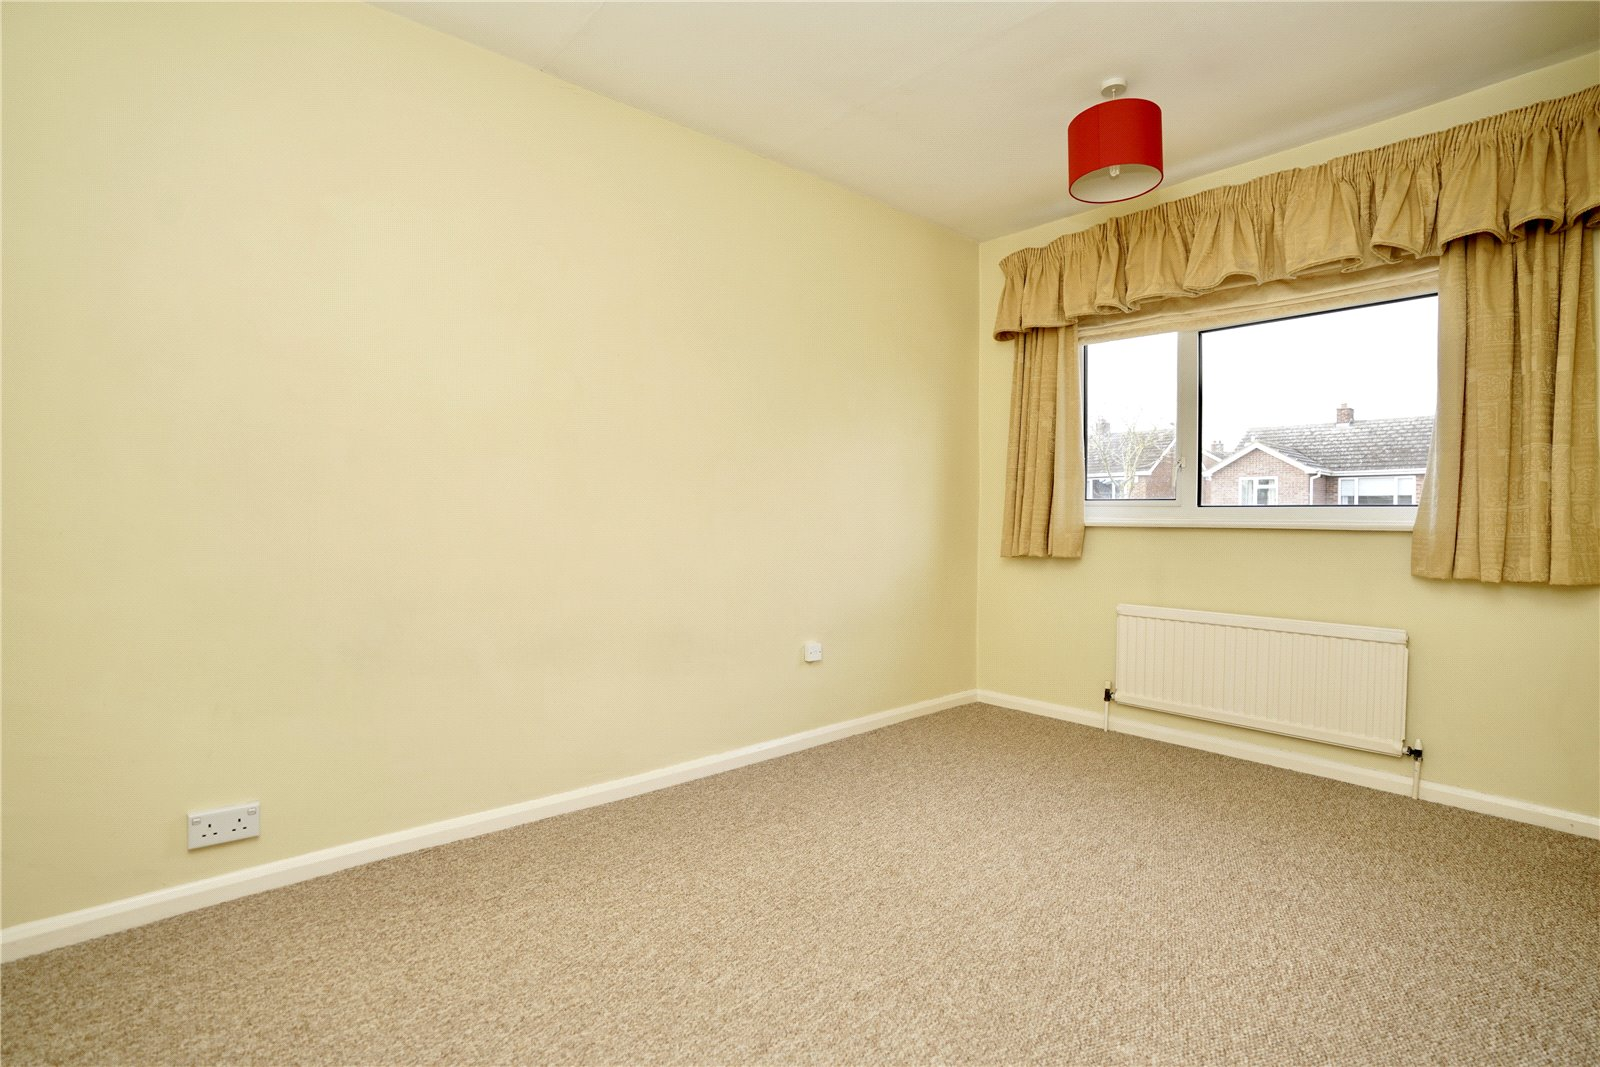 4 bed house for sale in Manor Close, Great Staughton 10